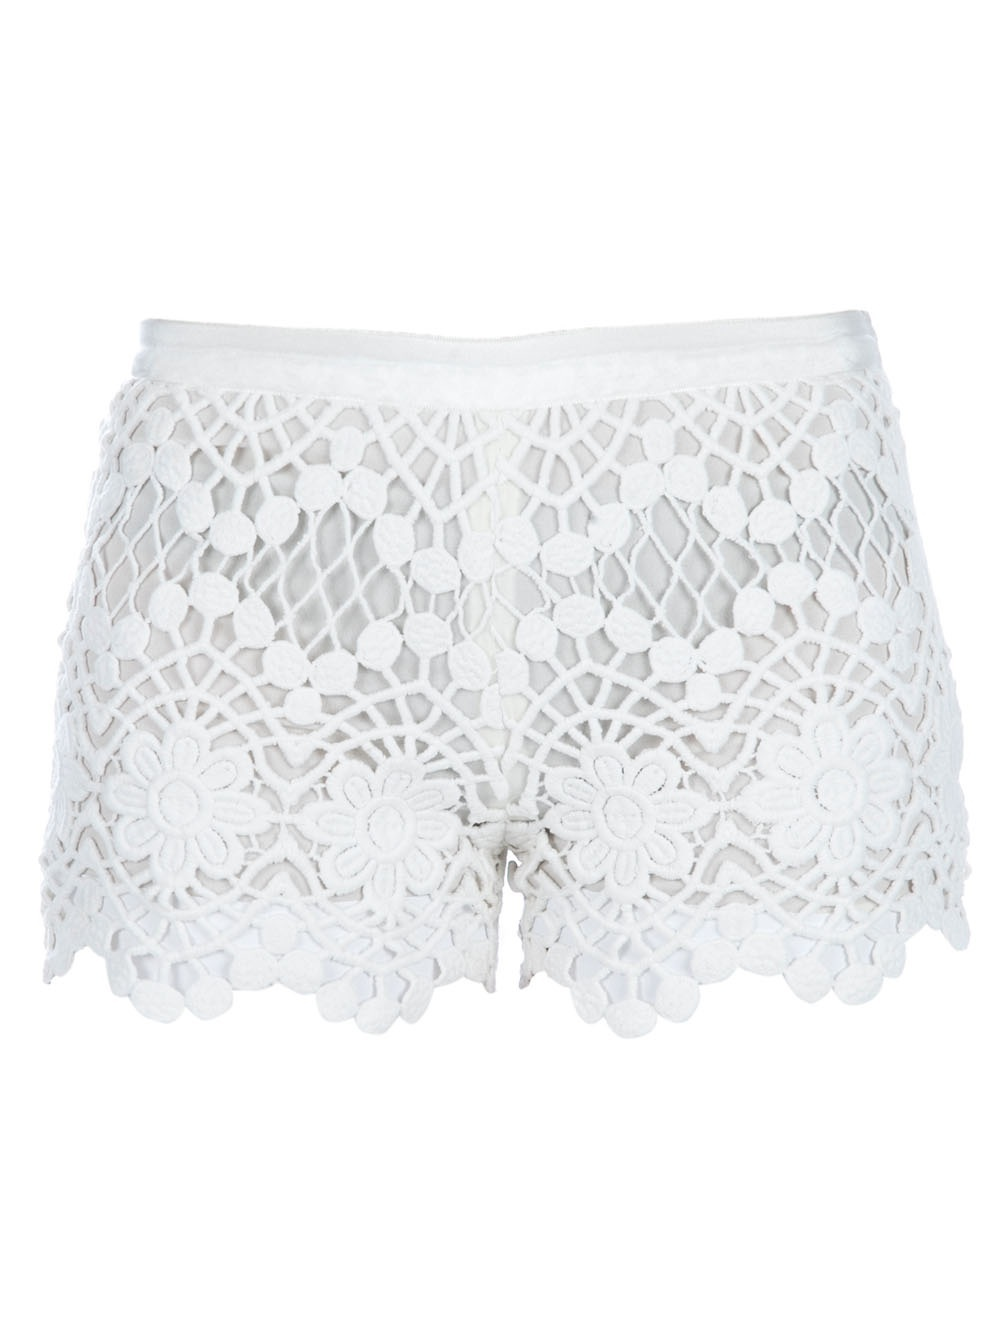 Lace-short-shorts-for-summertime-brides.full